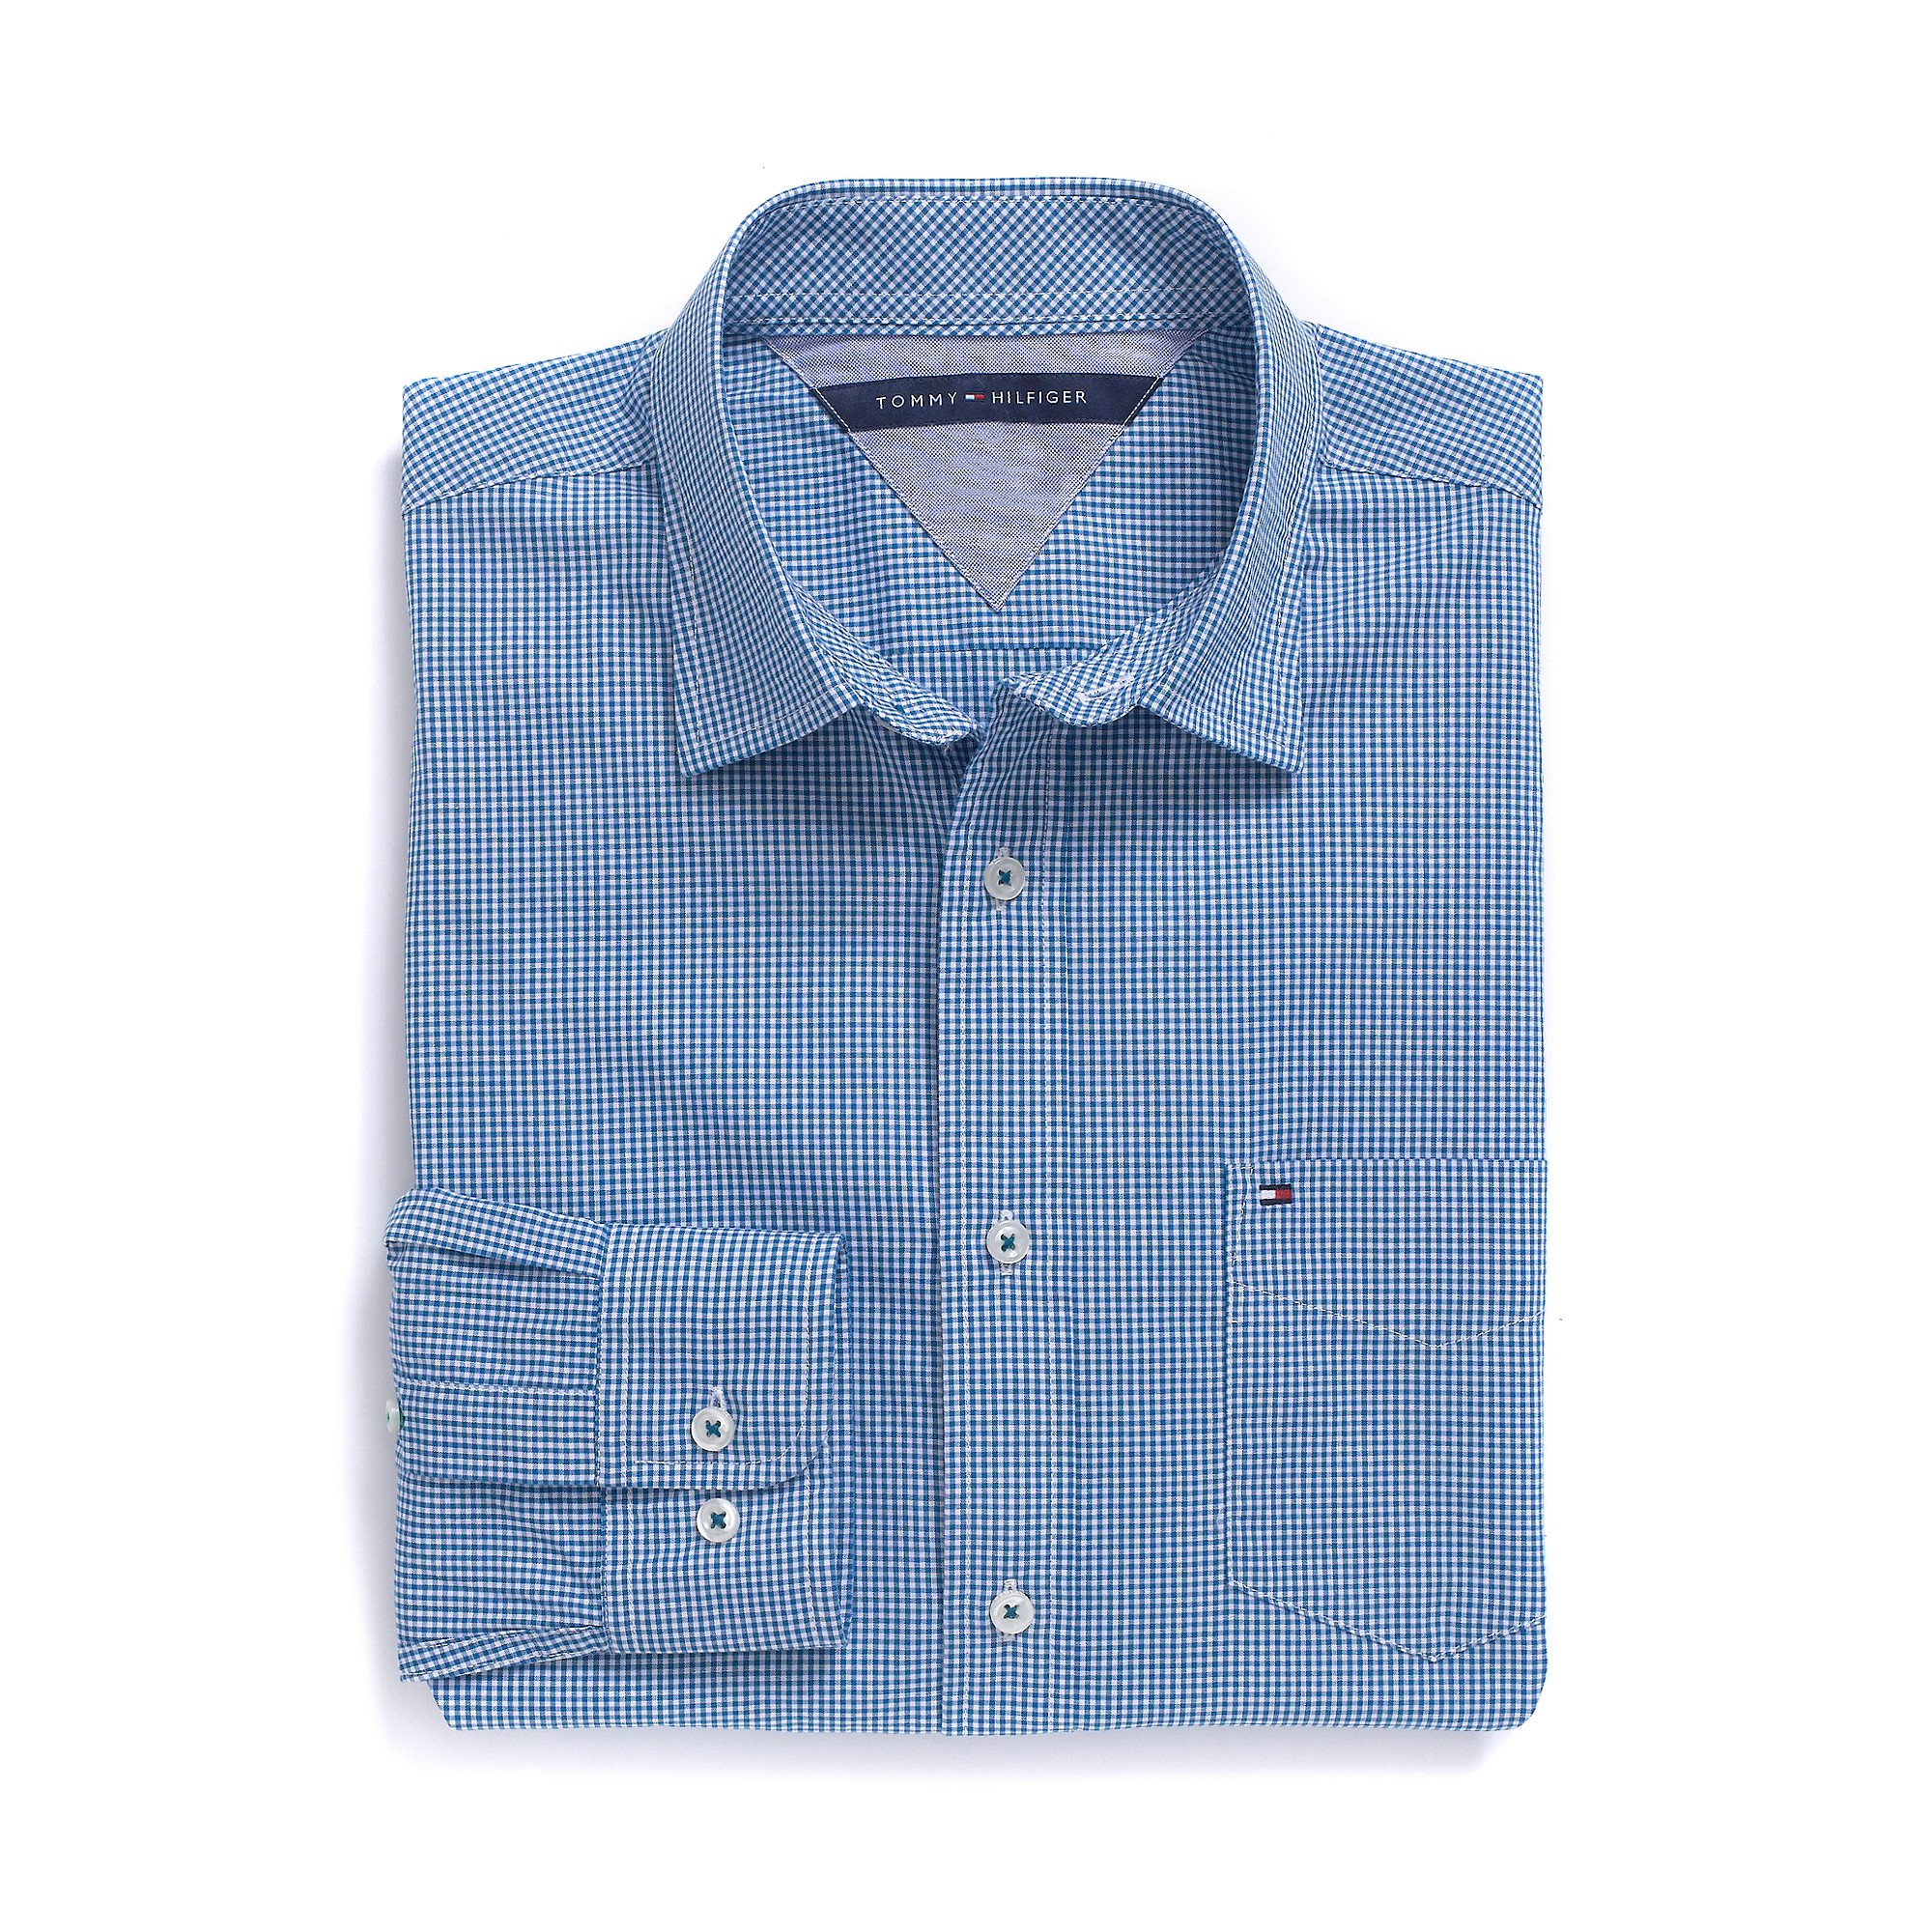 Tommy Hilfiger Classic Fit Shirt Long Sleeve Shirt In Blue